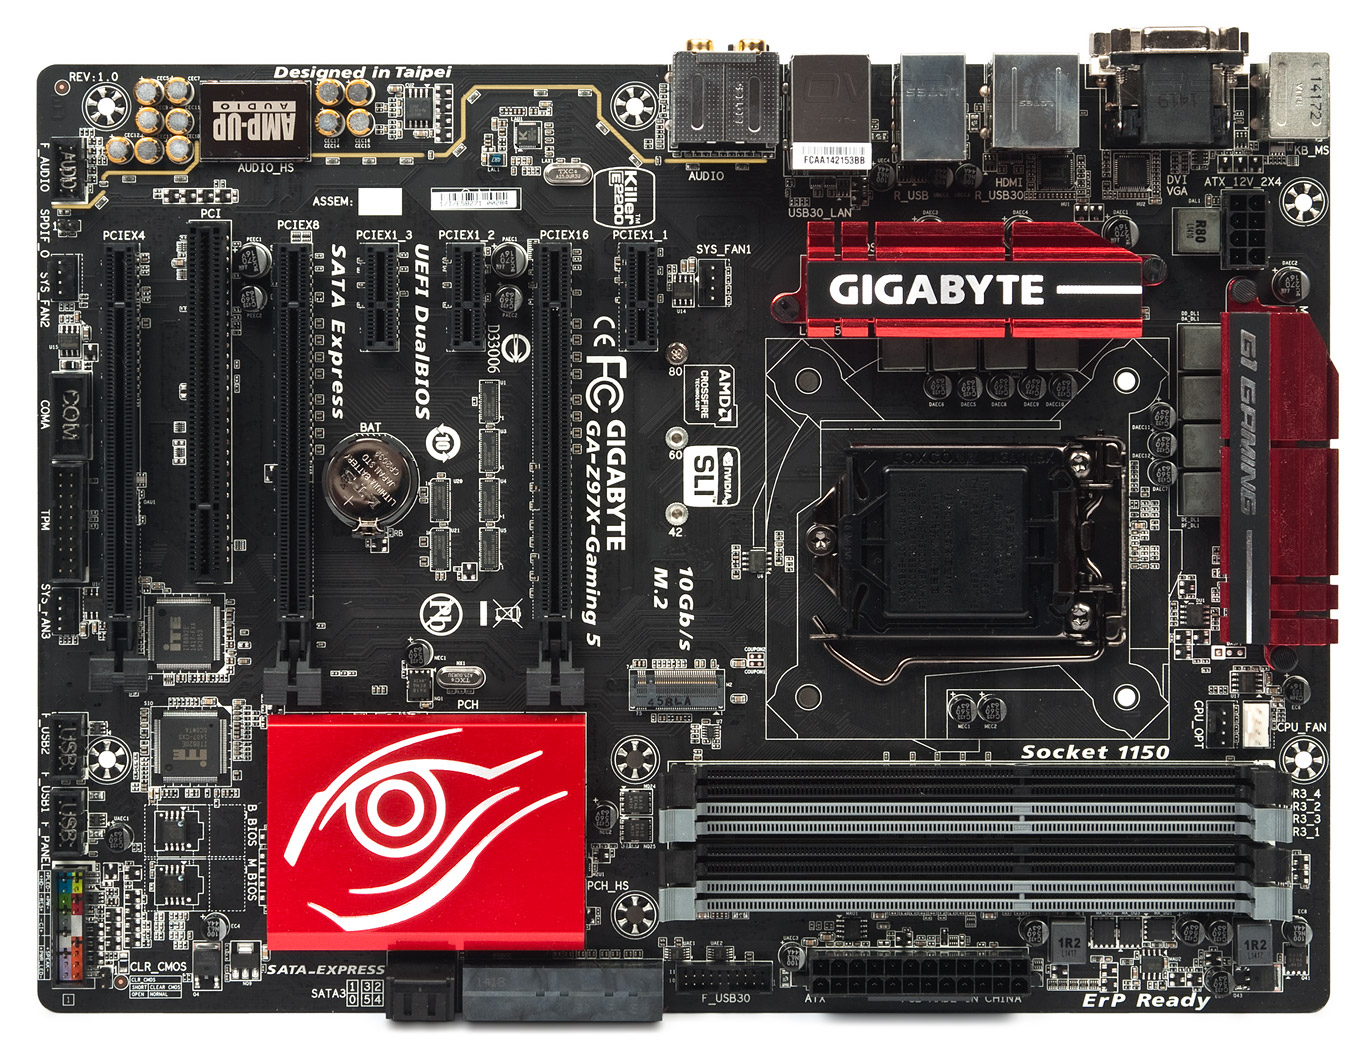 Gigabyte GA-Z97N-Gaming 5 BigFoot LAN Drivers for Windows 7